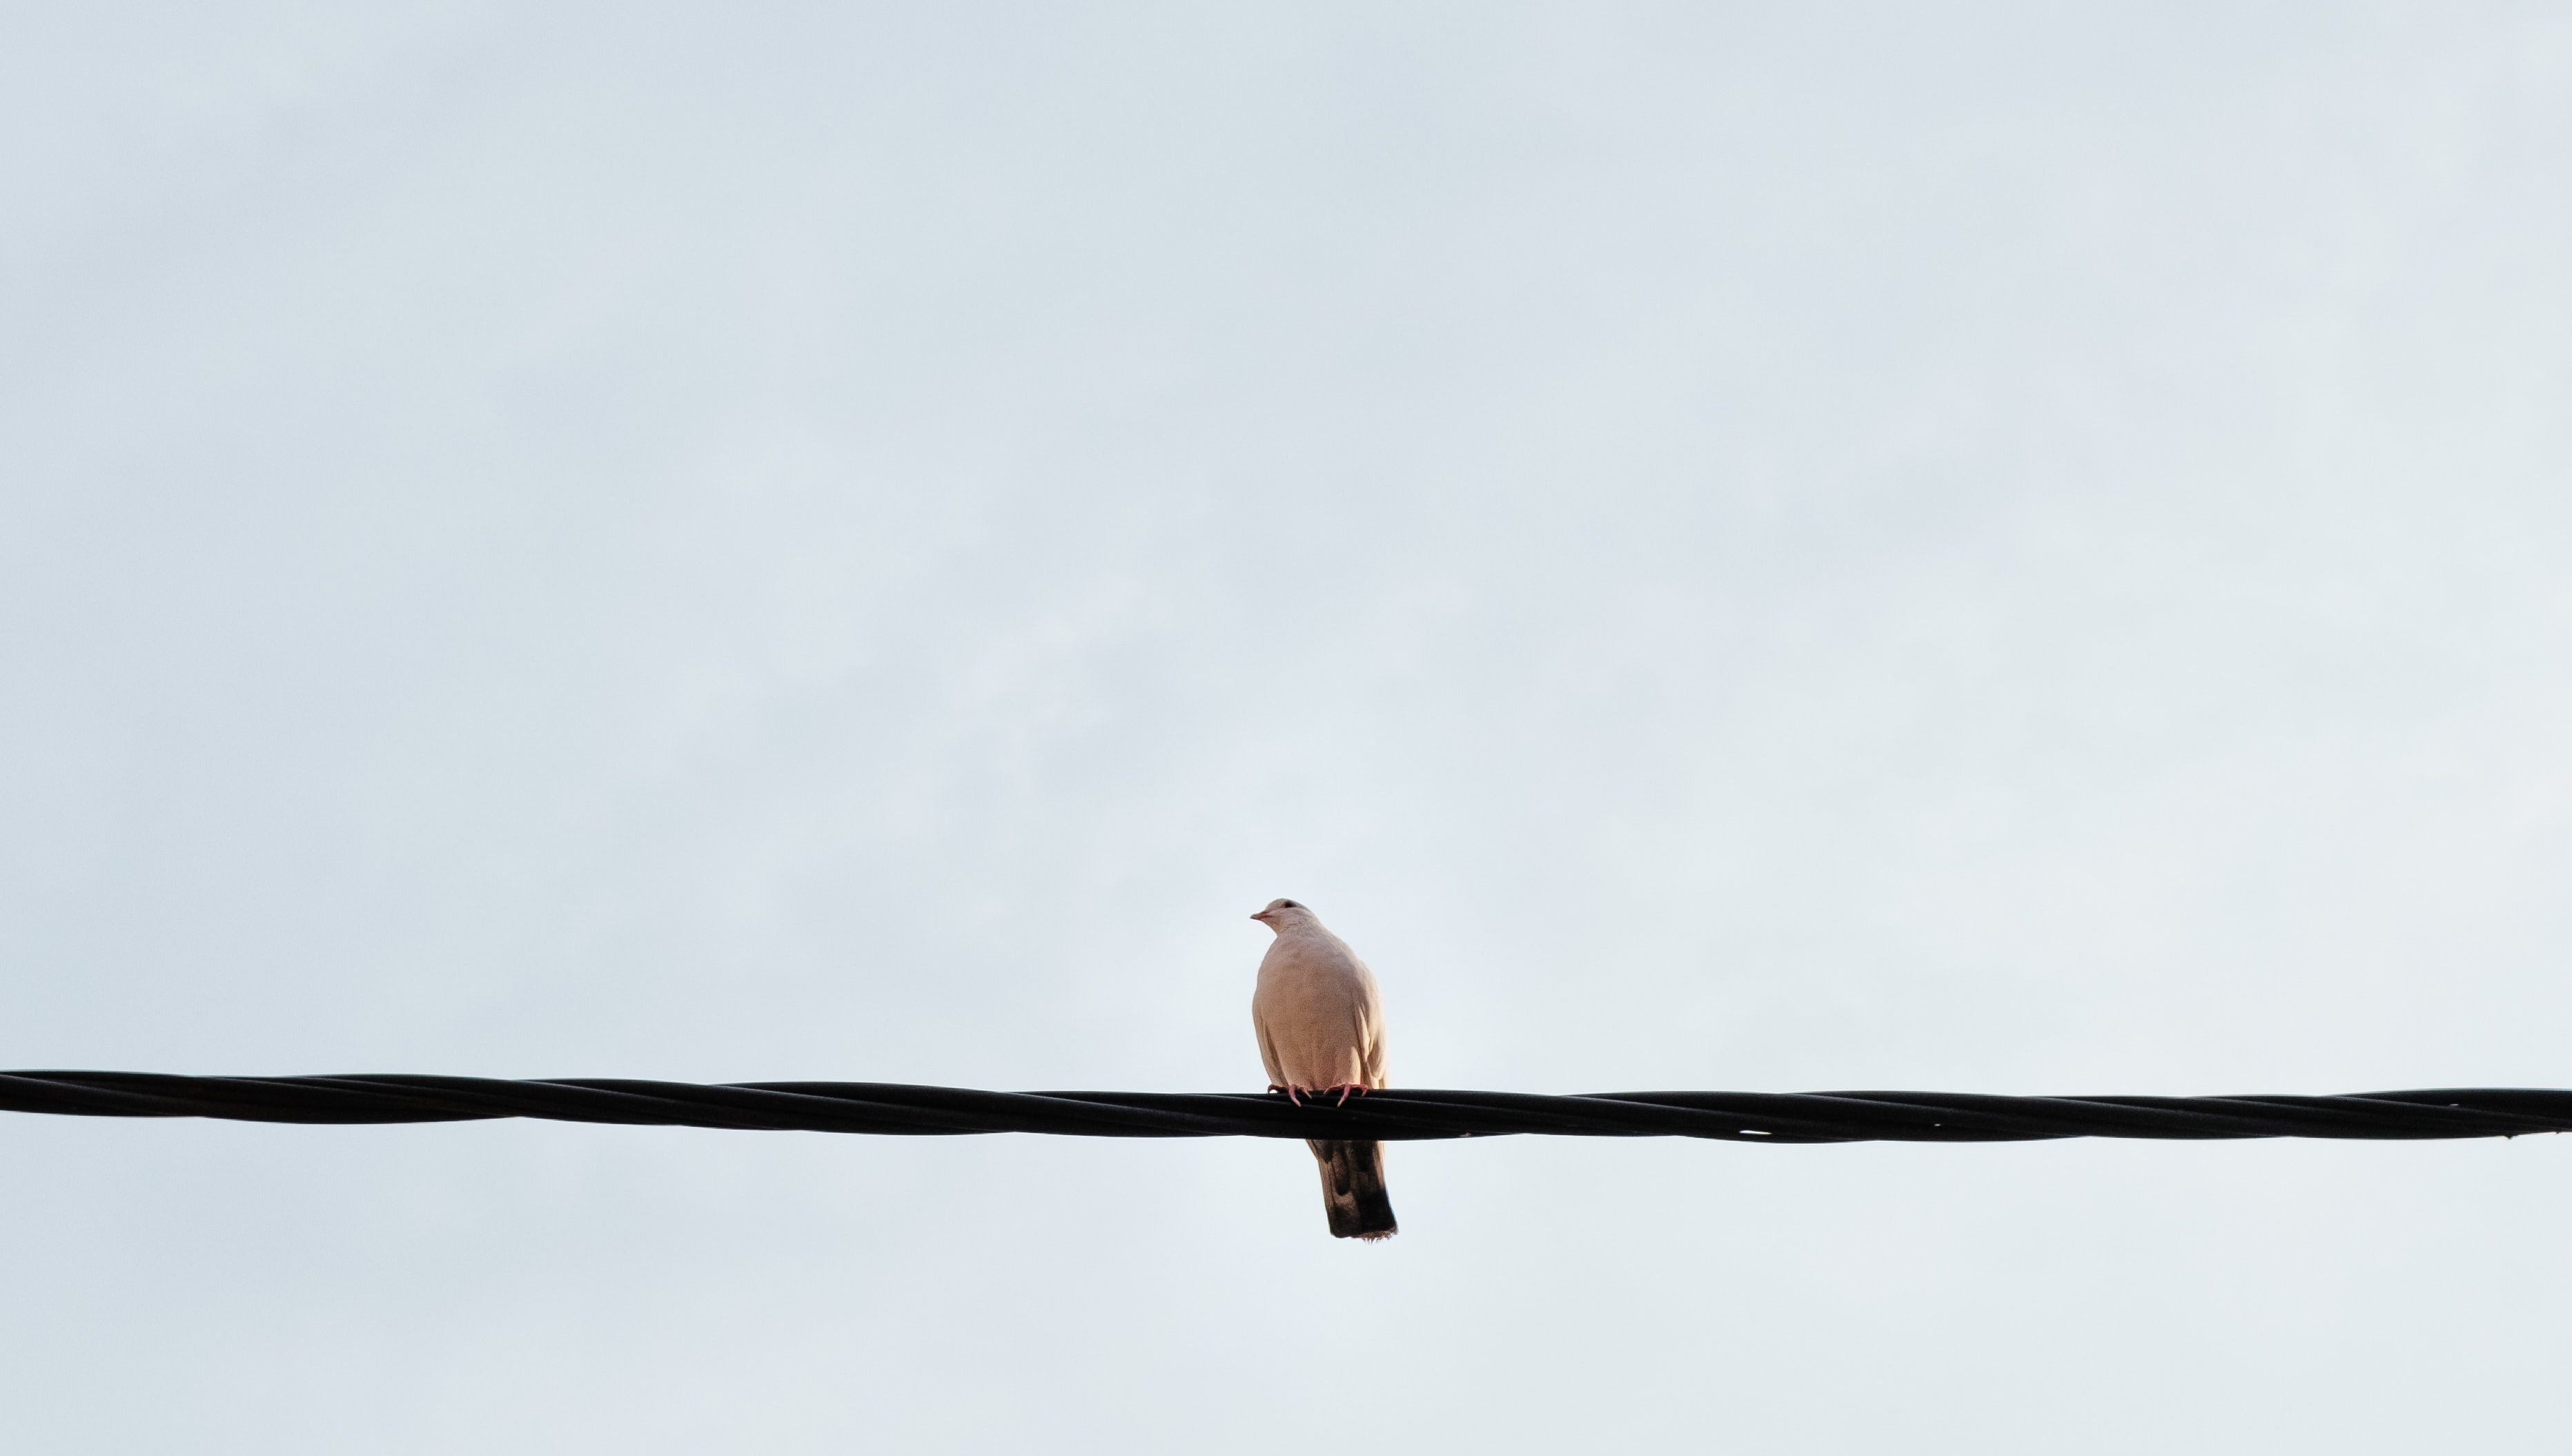 A solitary bird perching on a telephone wire